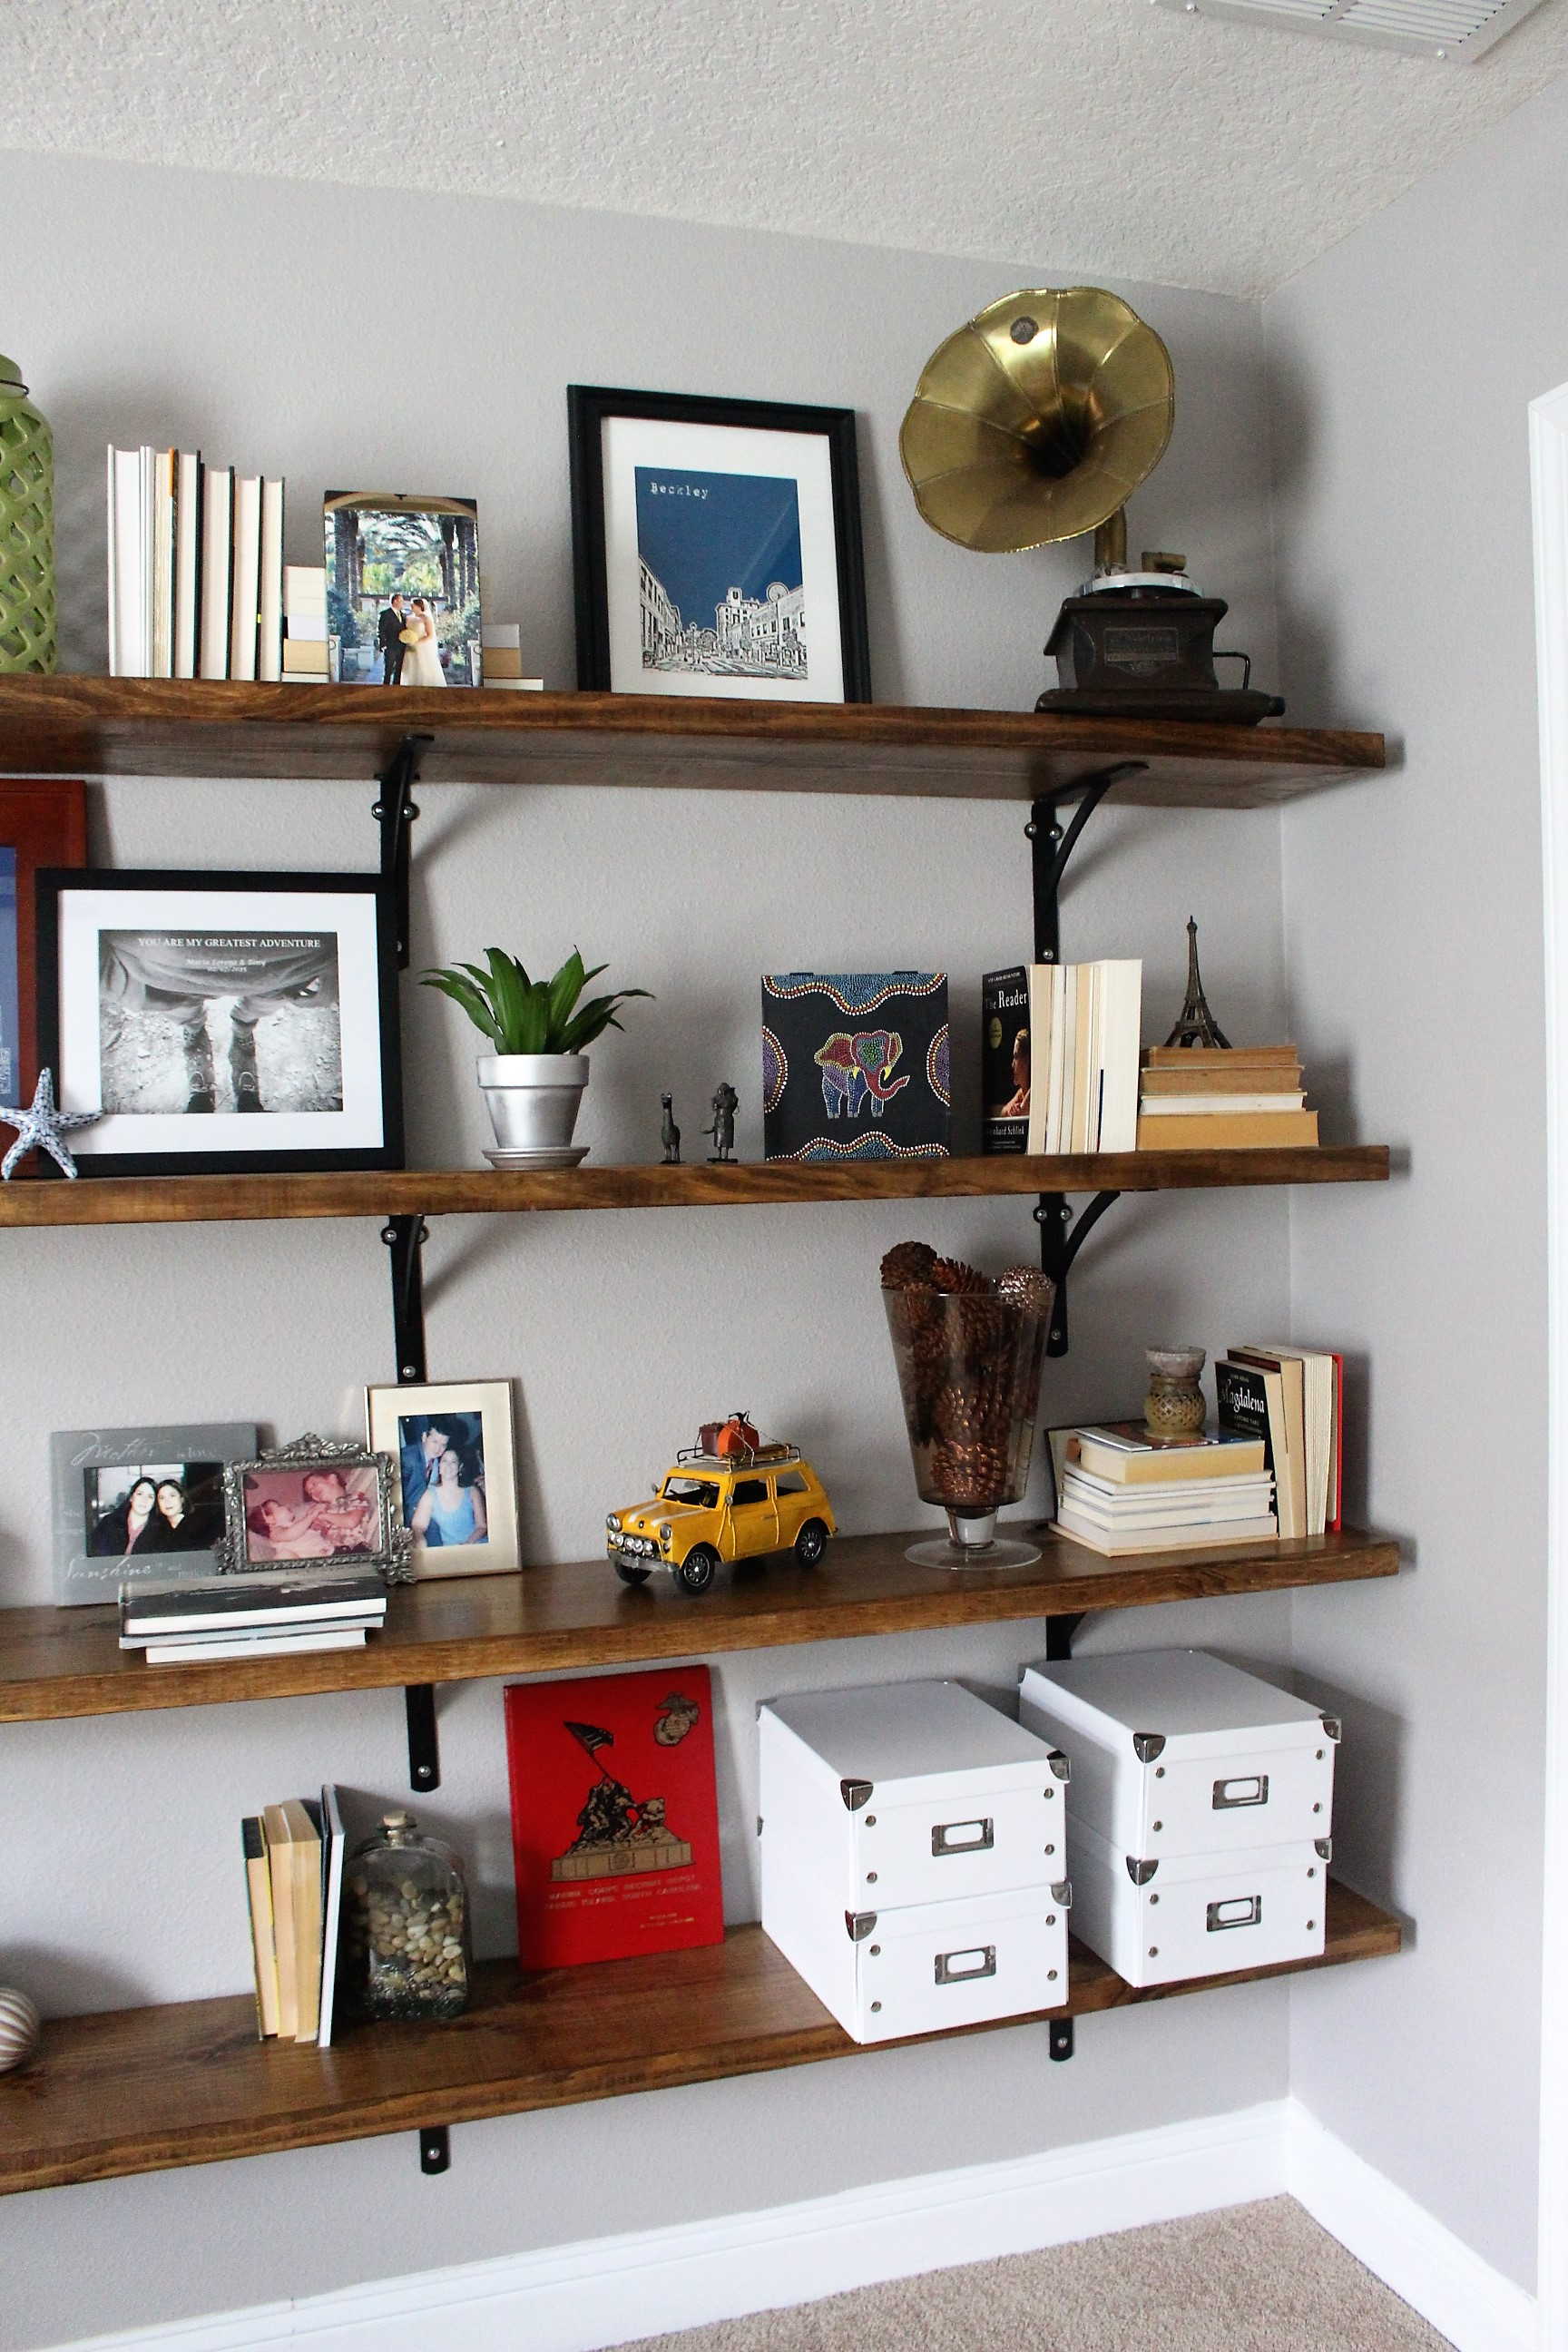 storage on open shelving